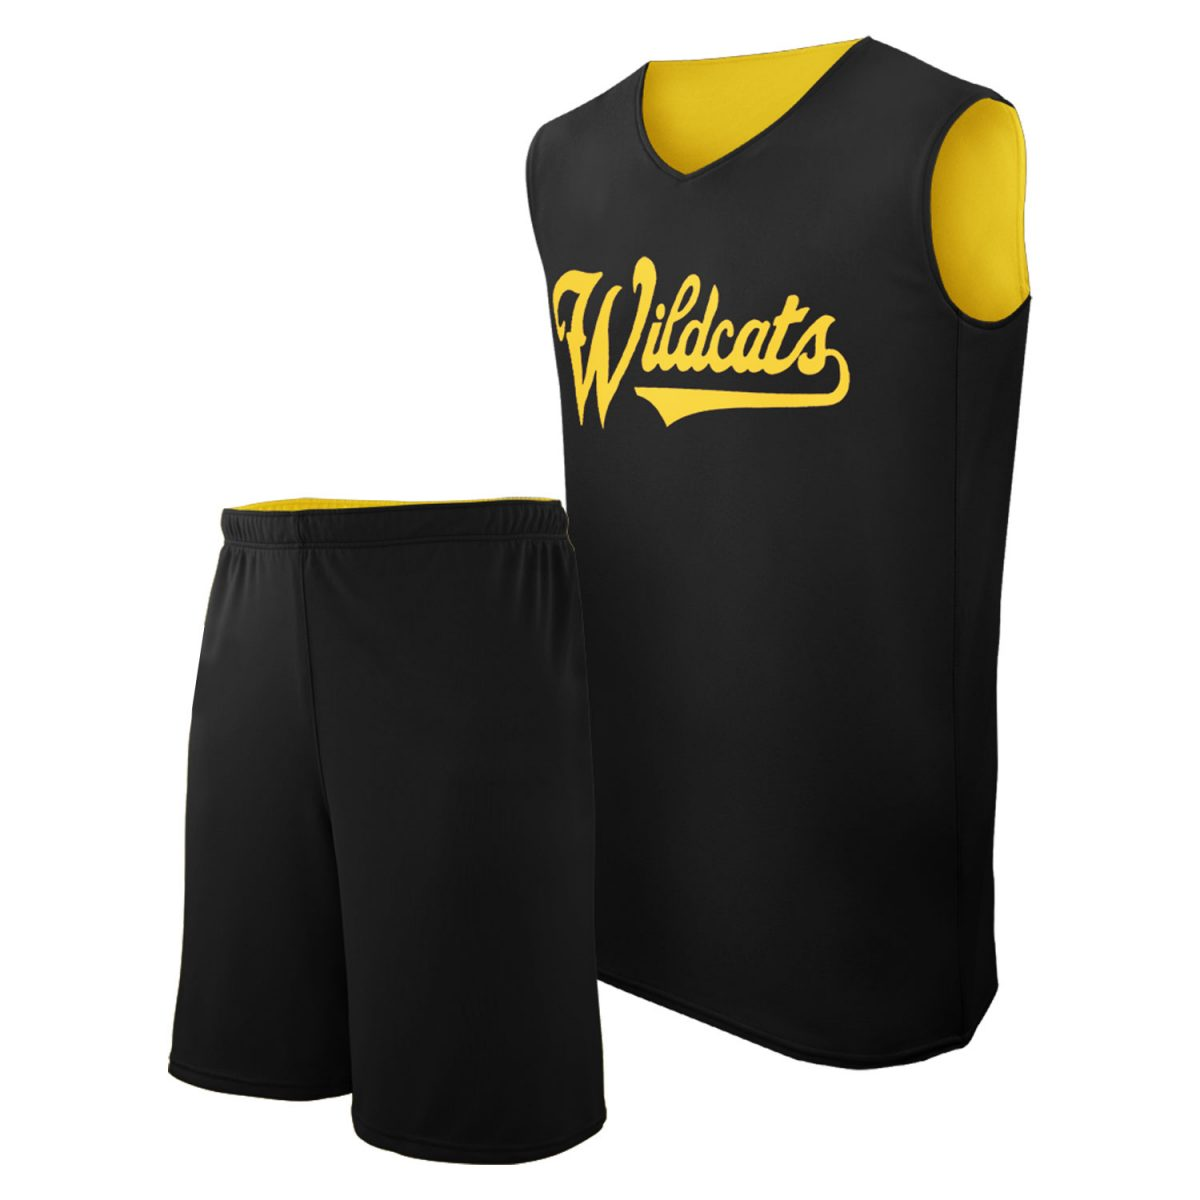 Boys Basketball Uniforms Manufacturers in Patna